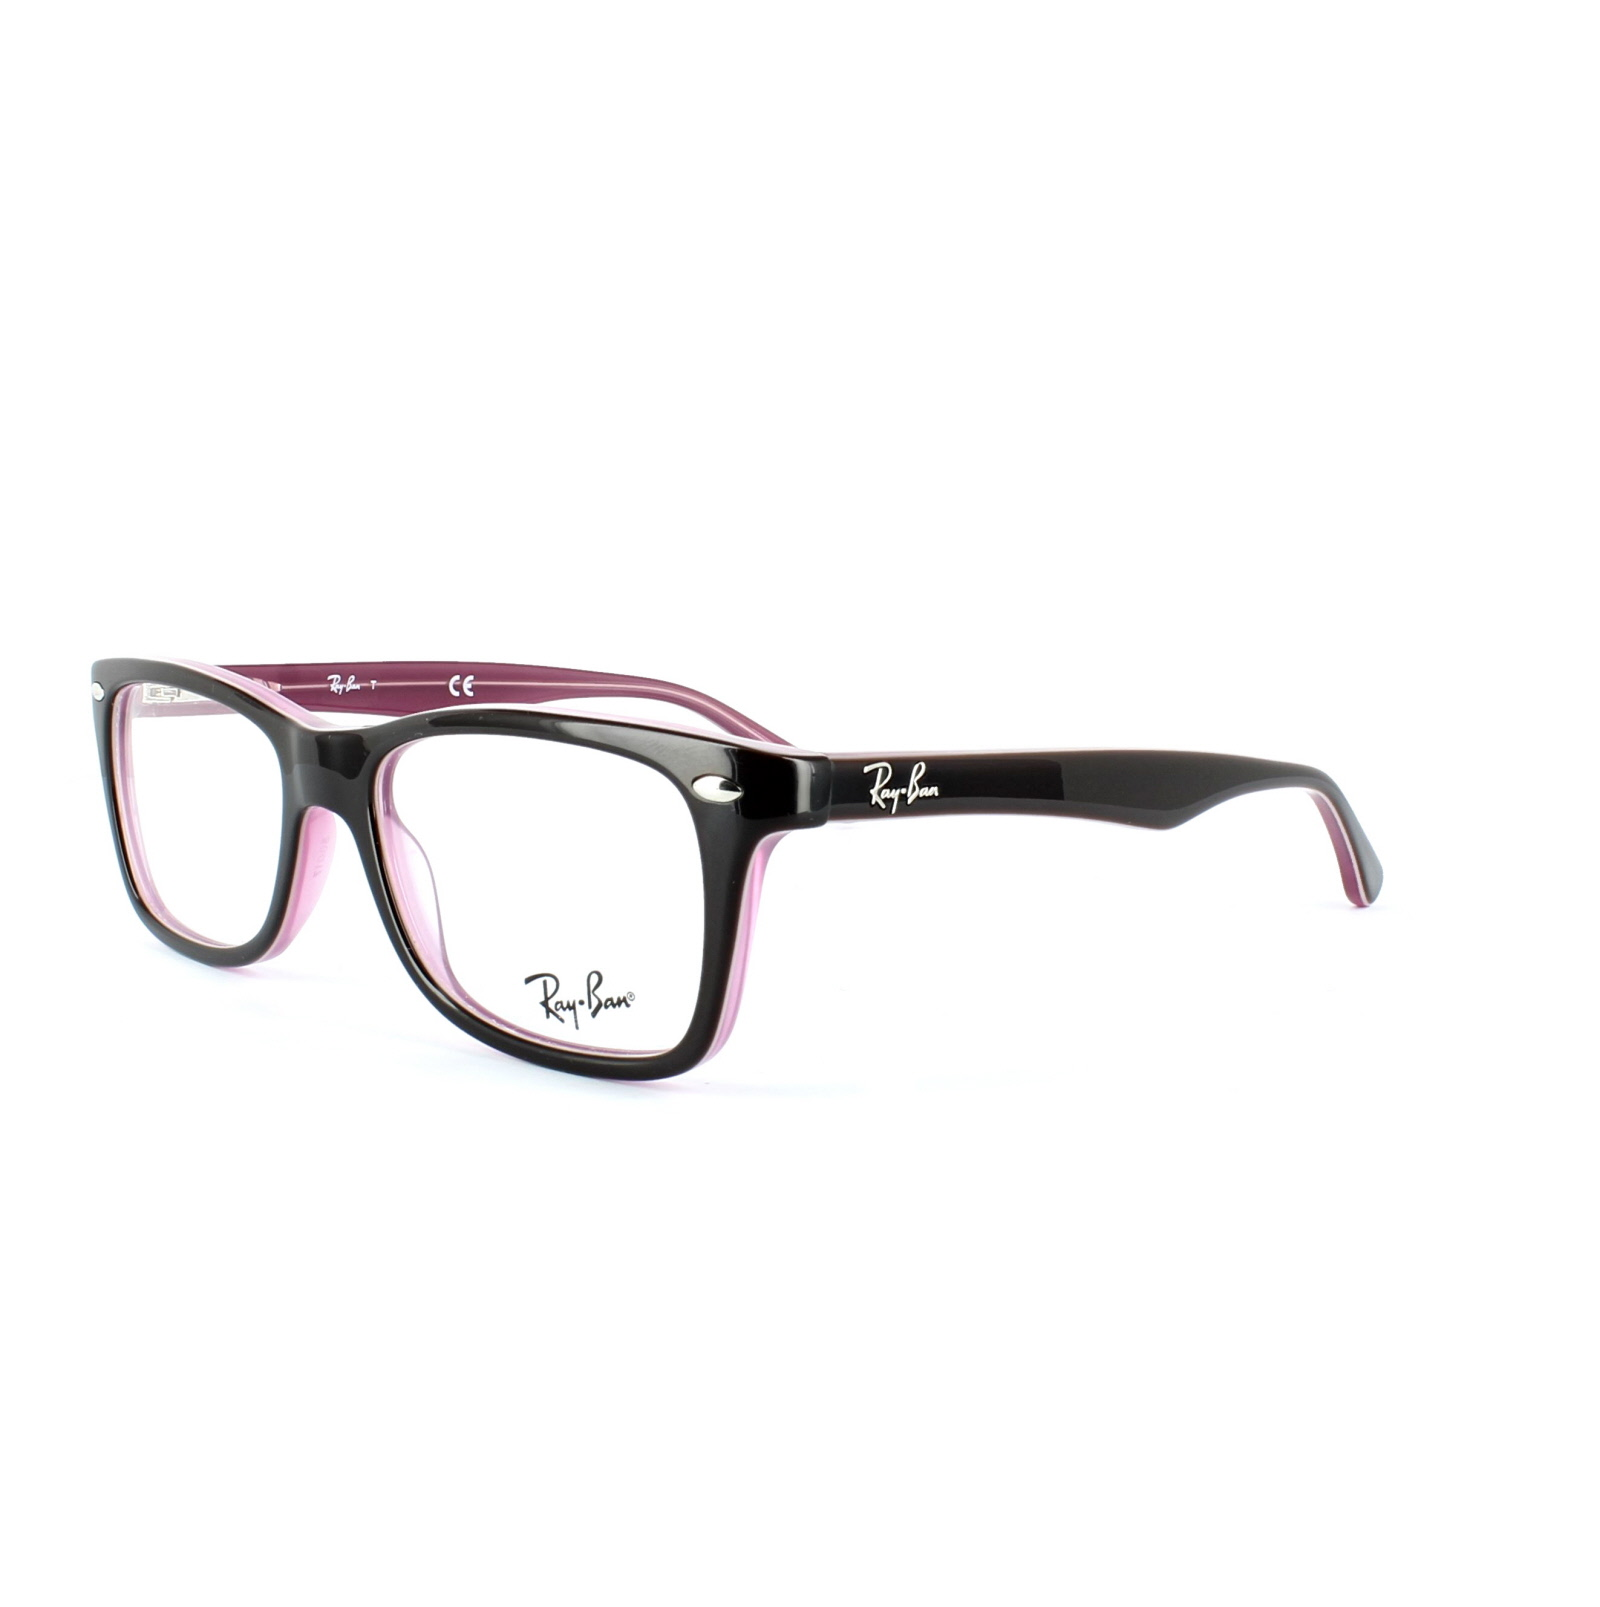 Sentinel Ray-Ban Glasses Frames 5228 2126 Top Brown on Opal Pink Clear 50mm